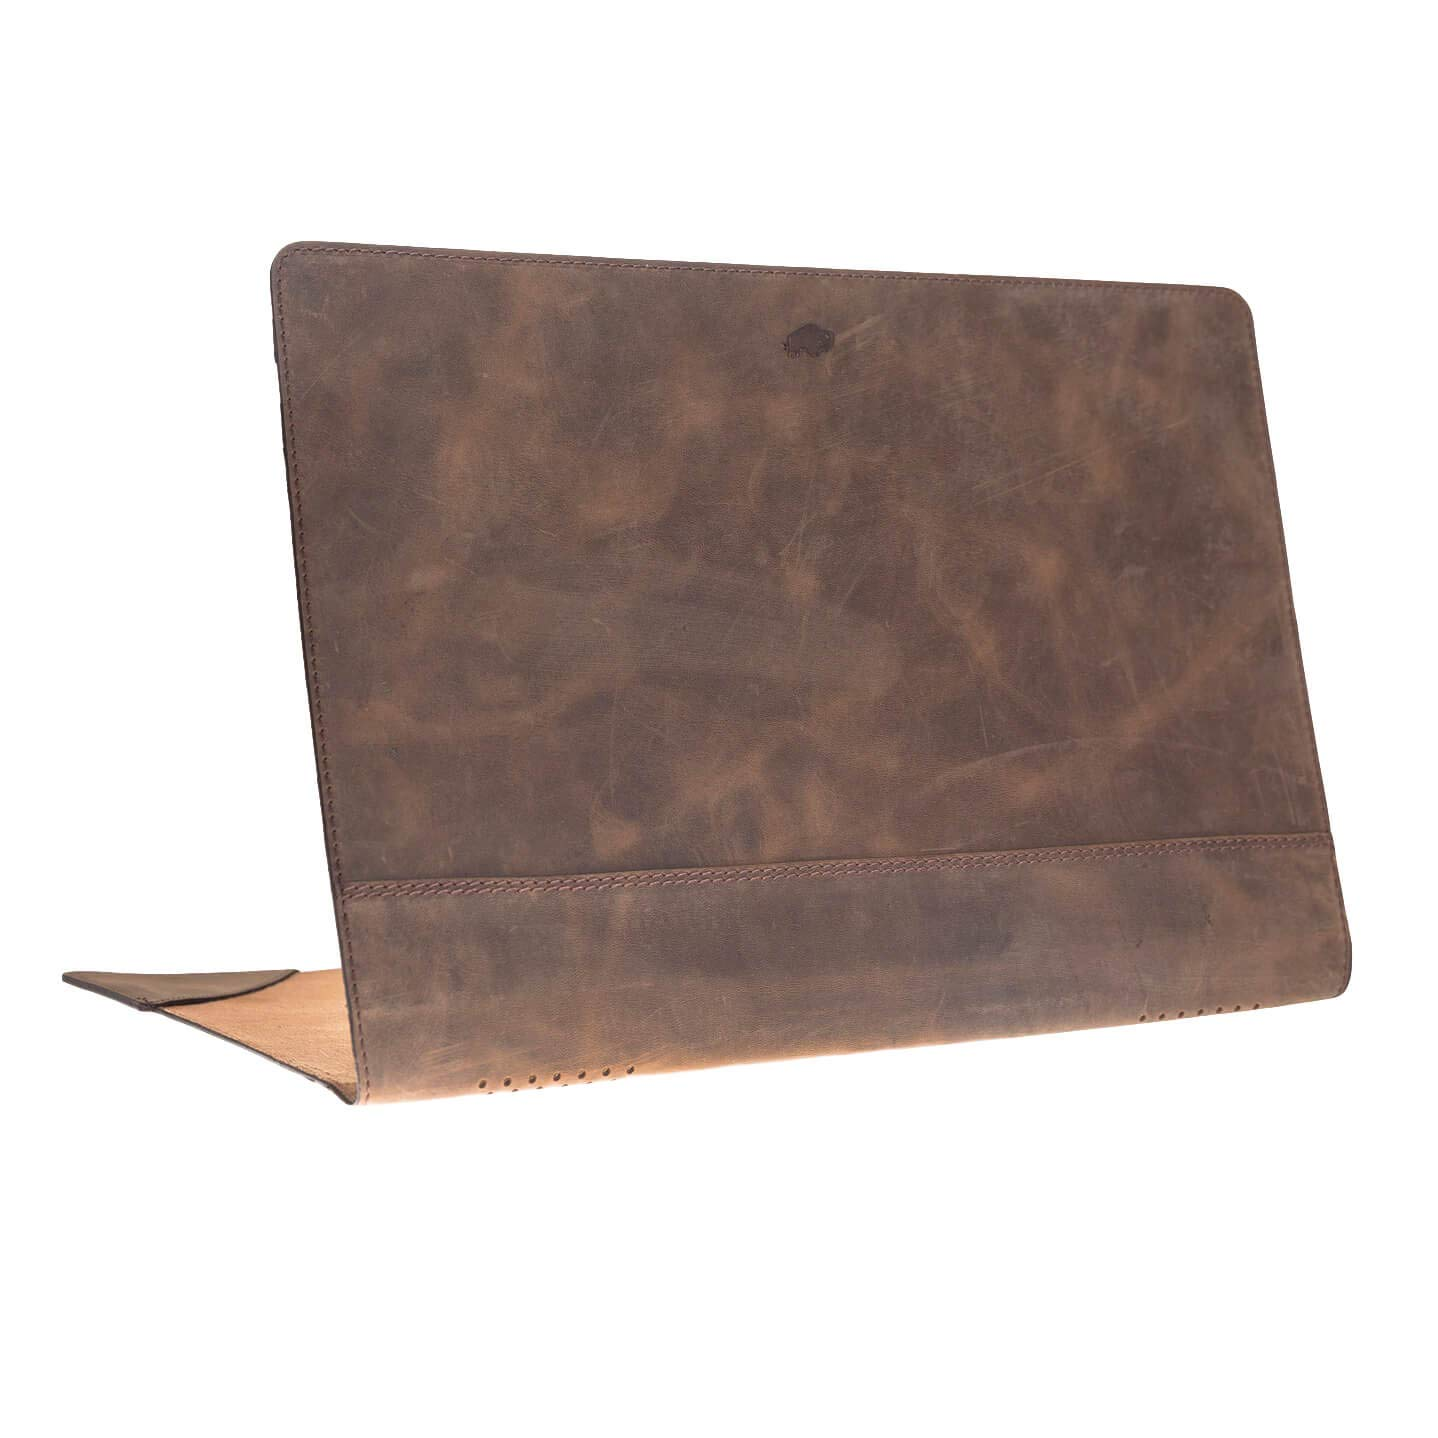 Apple MacBook Pro 13'' Burkley Soft Cover Case, Handmade and Genuine Leather for Apple MacBook Pro 13'' (Distressed Antique Coffee)